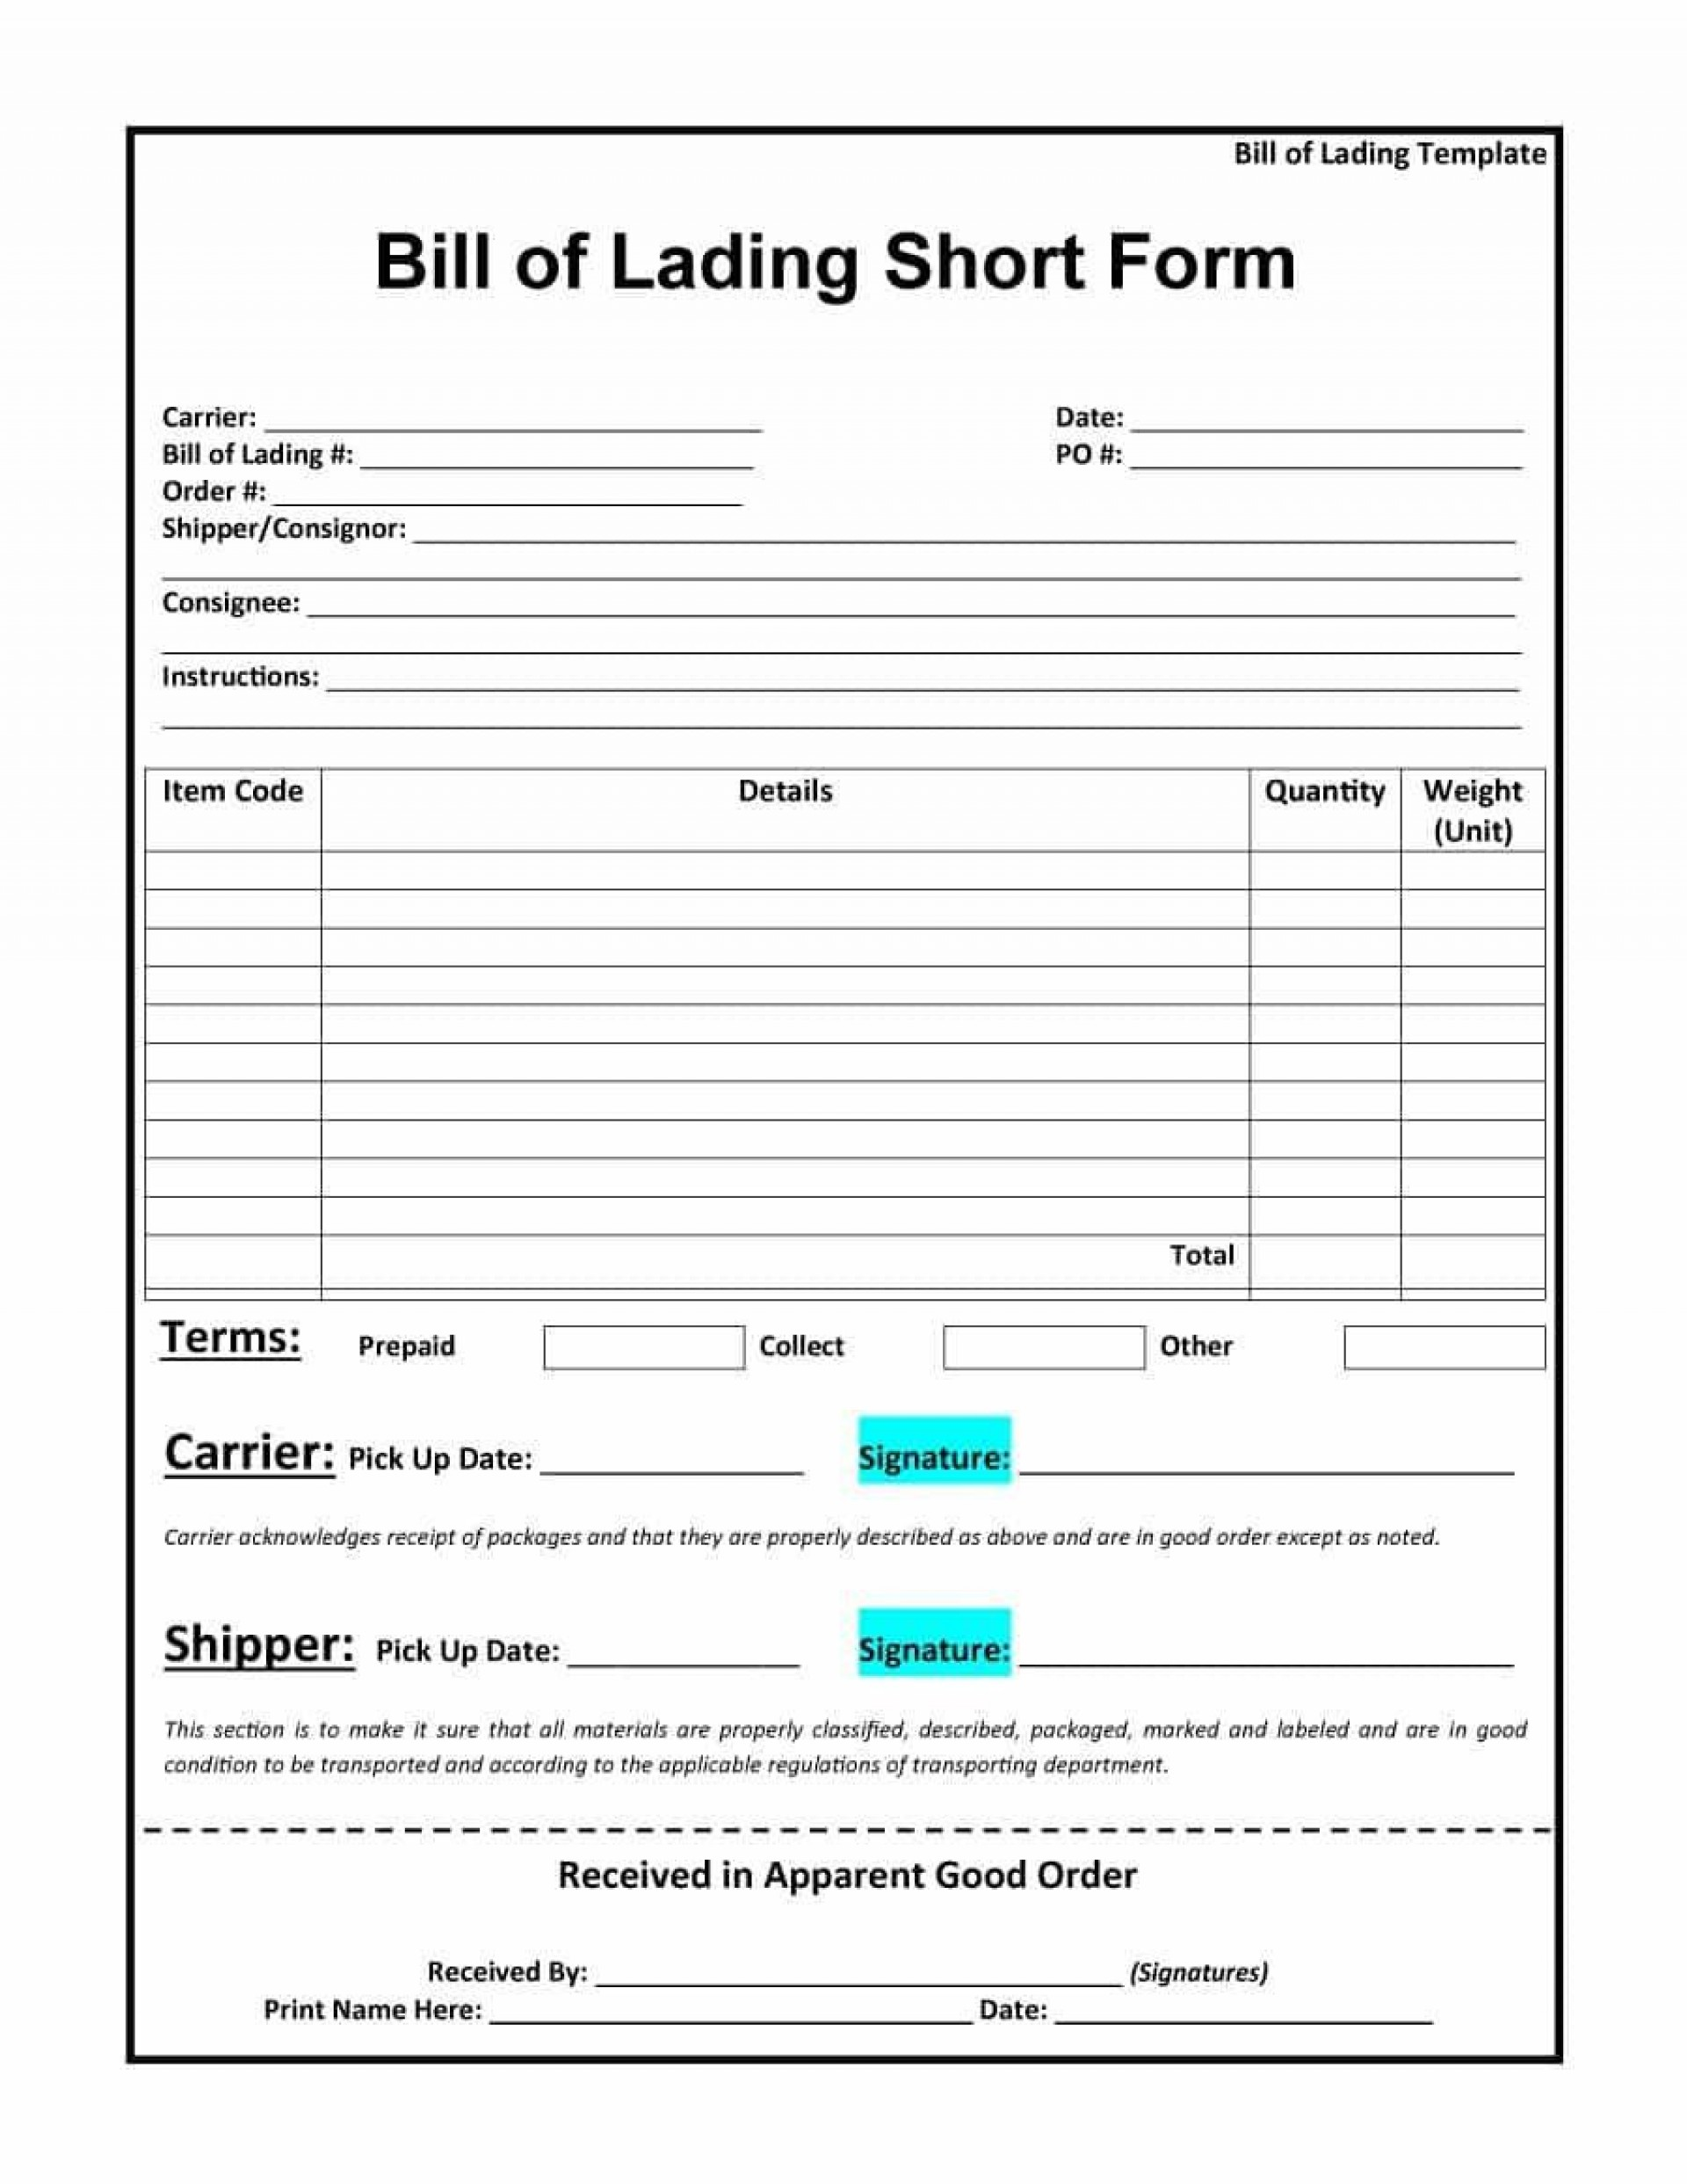 009 Staggering Bill Of Lading Form Word Highest Quality  Document Short House Template1920